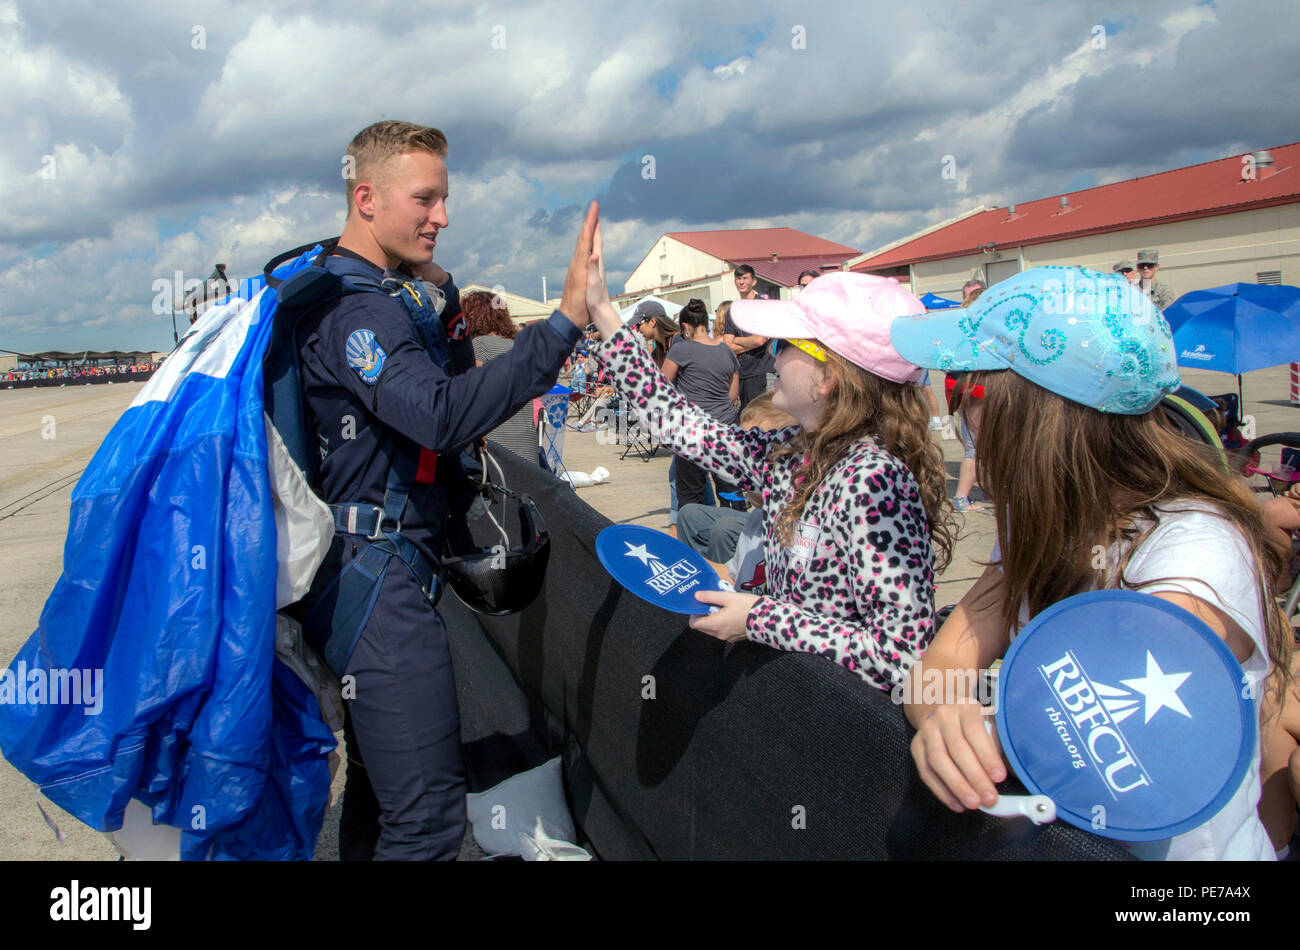 Jenna Koch (center), gives a high five to Cadet 1st Class Garrett Nobley, U.S. Air Force Academy Wings of Blue team member, during the 2015 Joint Base San Antonio Air Show and Open House Nov. 1, 2015, at JBSA-Randolph, Texas. Air shows allow the Air Force to display the capabilities of our aircraft to the American taxpayer through aerial demonstrations and static displays and allowing attendees to get up close and personal to see some of the equipment and aircraft used by the U.S. military today. (U.S. Air Force photo by Johnny Saldivar) Stock Photo